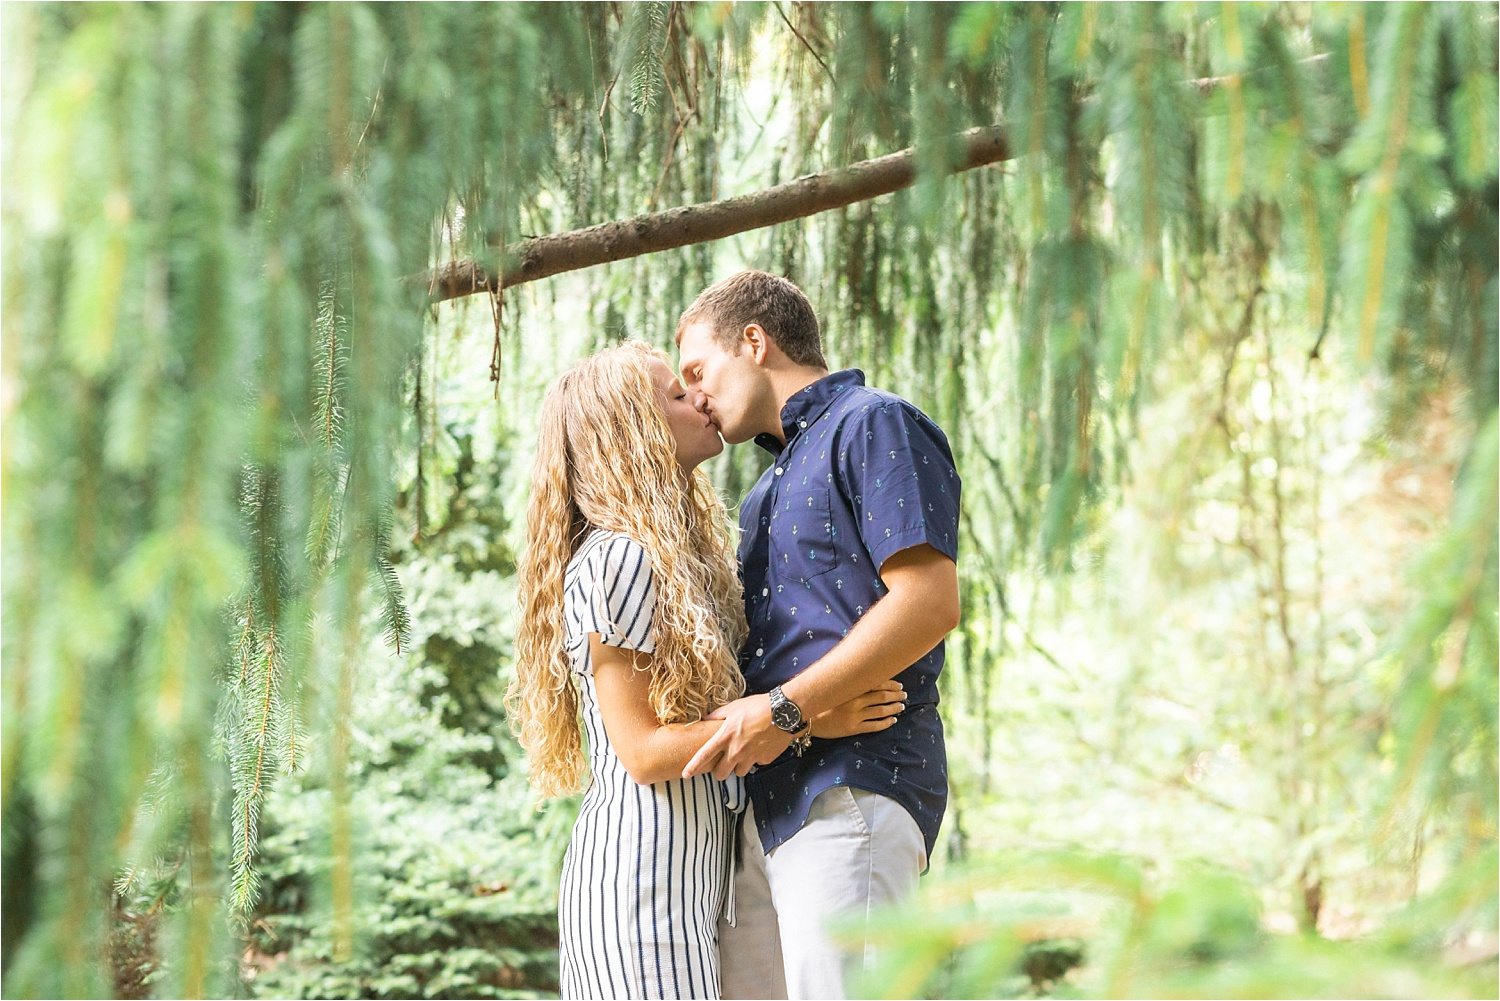 2019-08-13_0029.jpg light and airy fine art engagement photos at fellows riverside gardens in july 2019